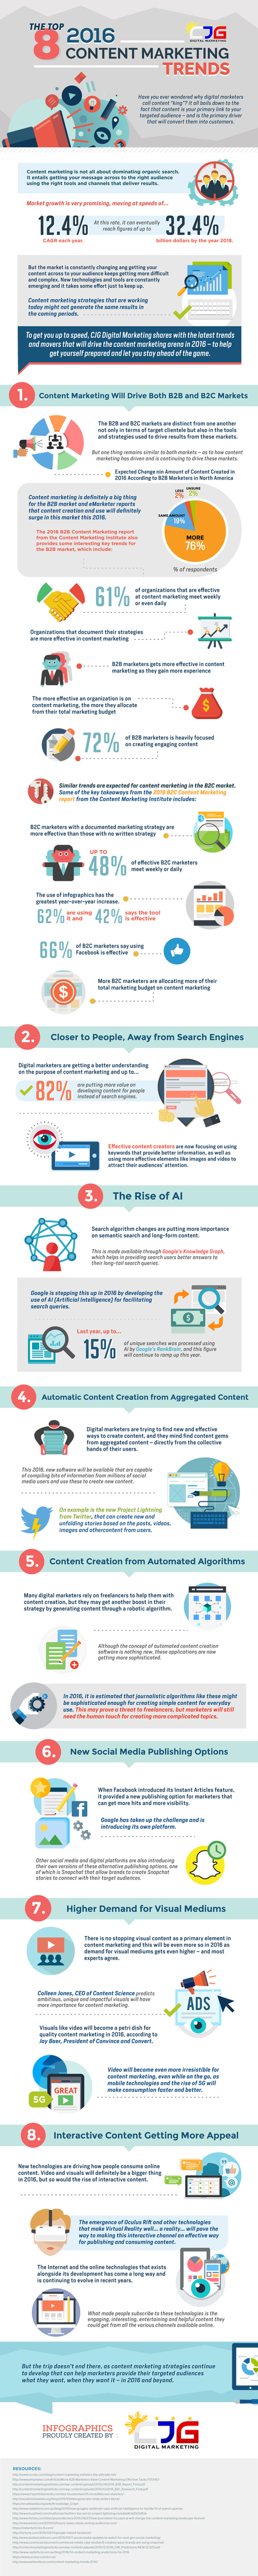 The Top 8 Hottest 2016 Content Marketing Trends #Infographic | MarketingHits | Scoop.it